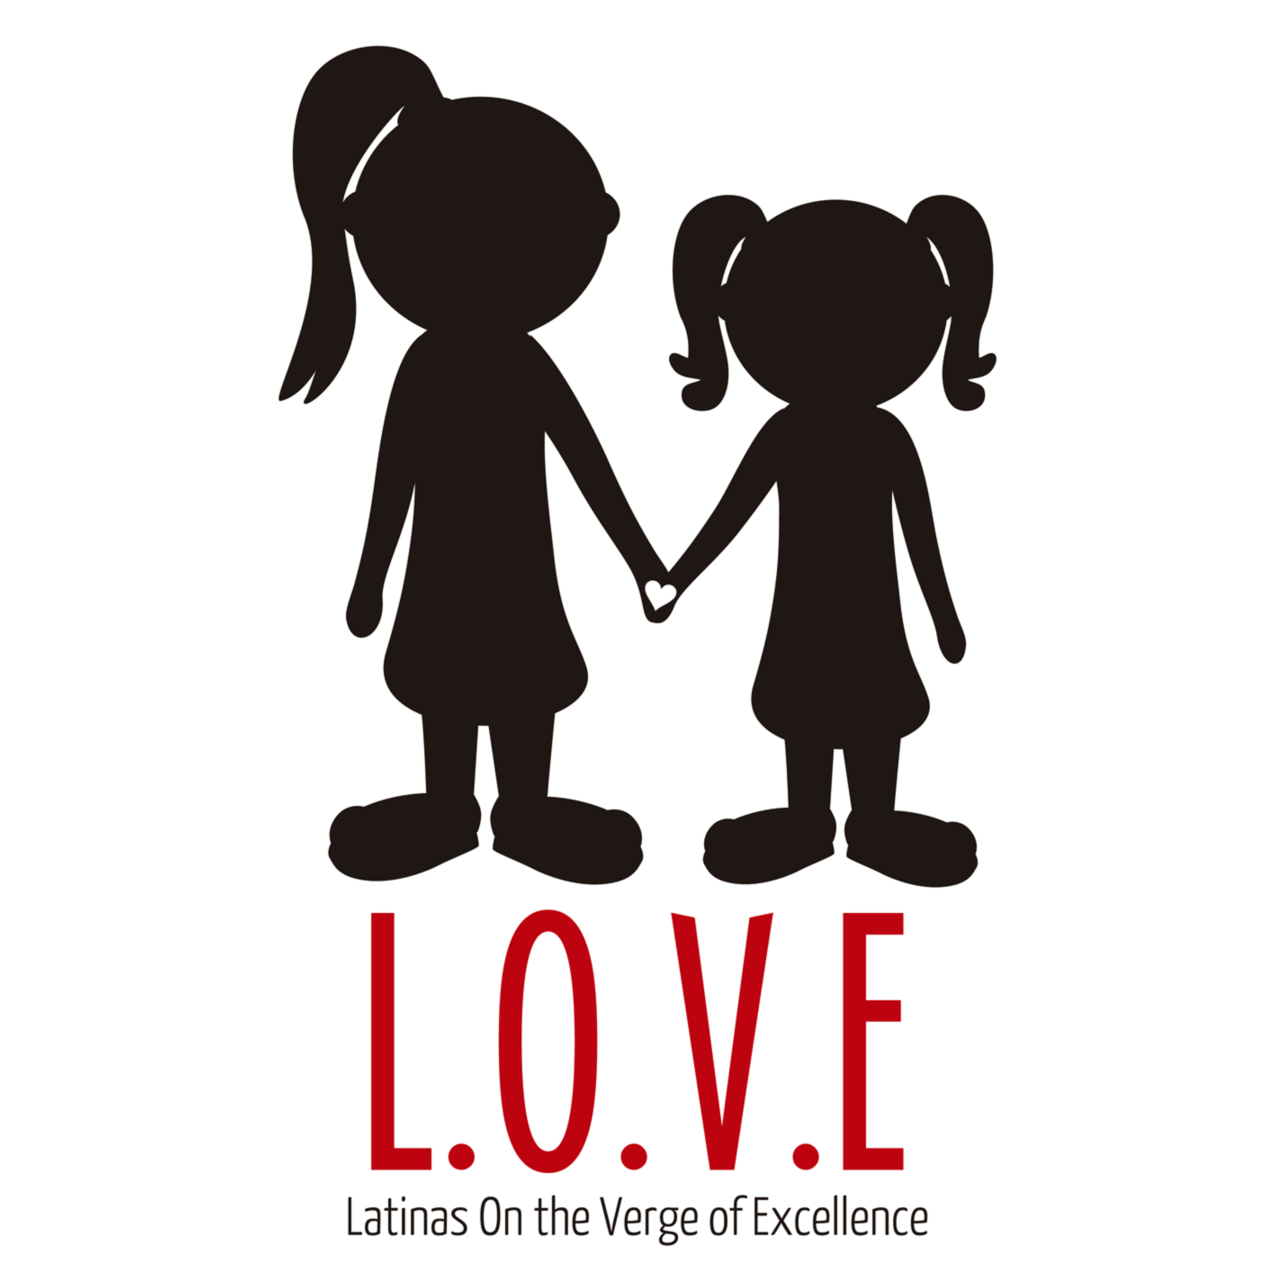 logo of L.O.V.E Mentoring Program